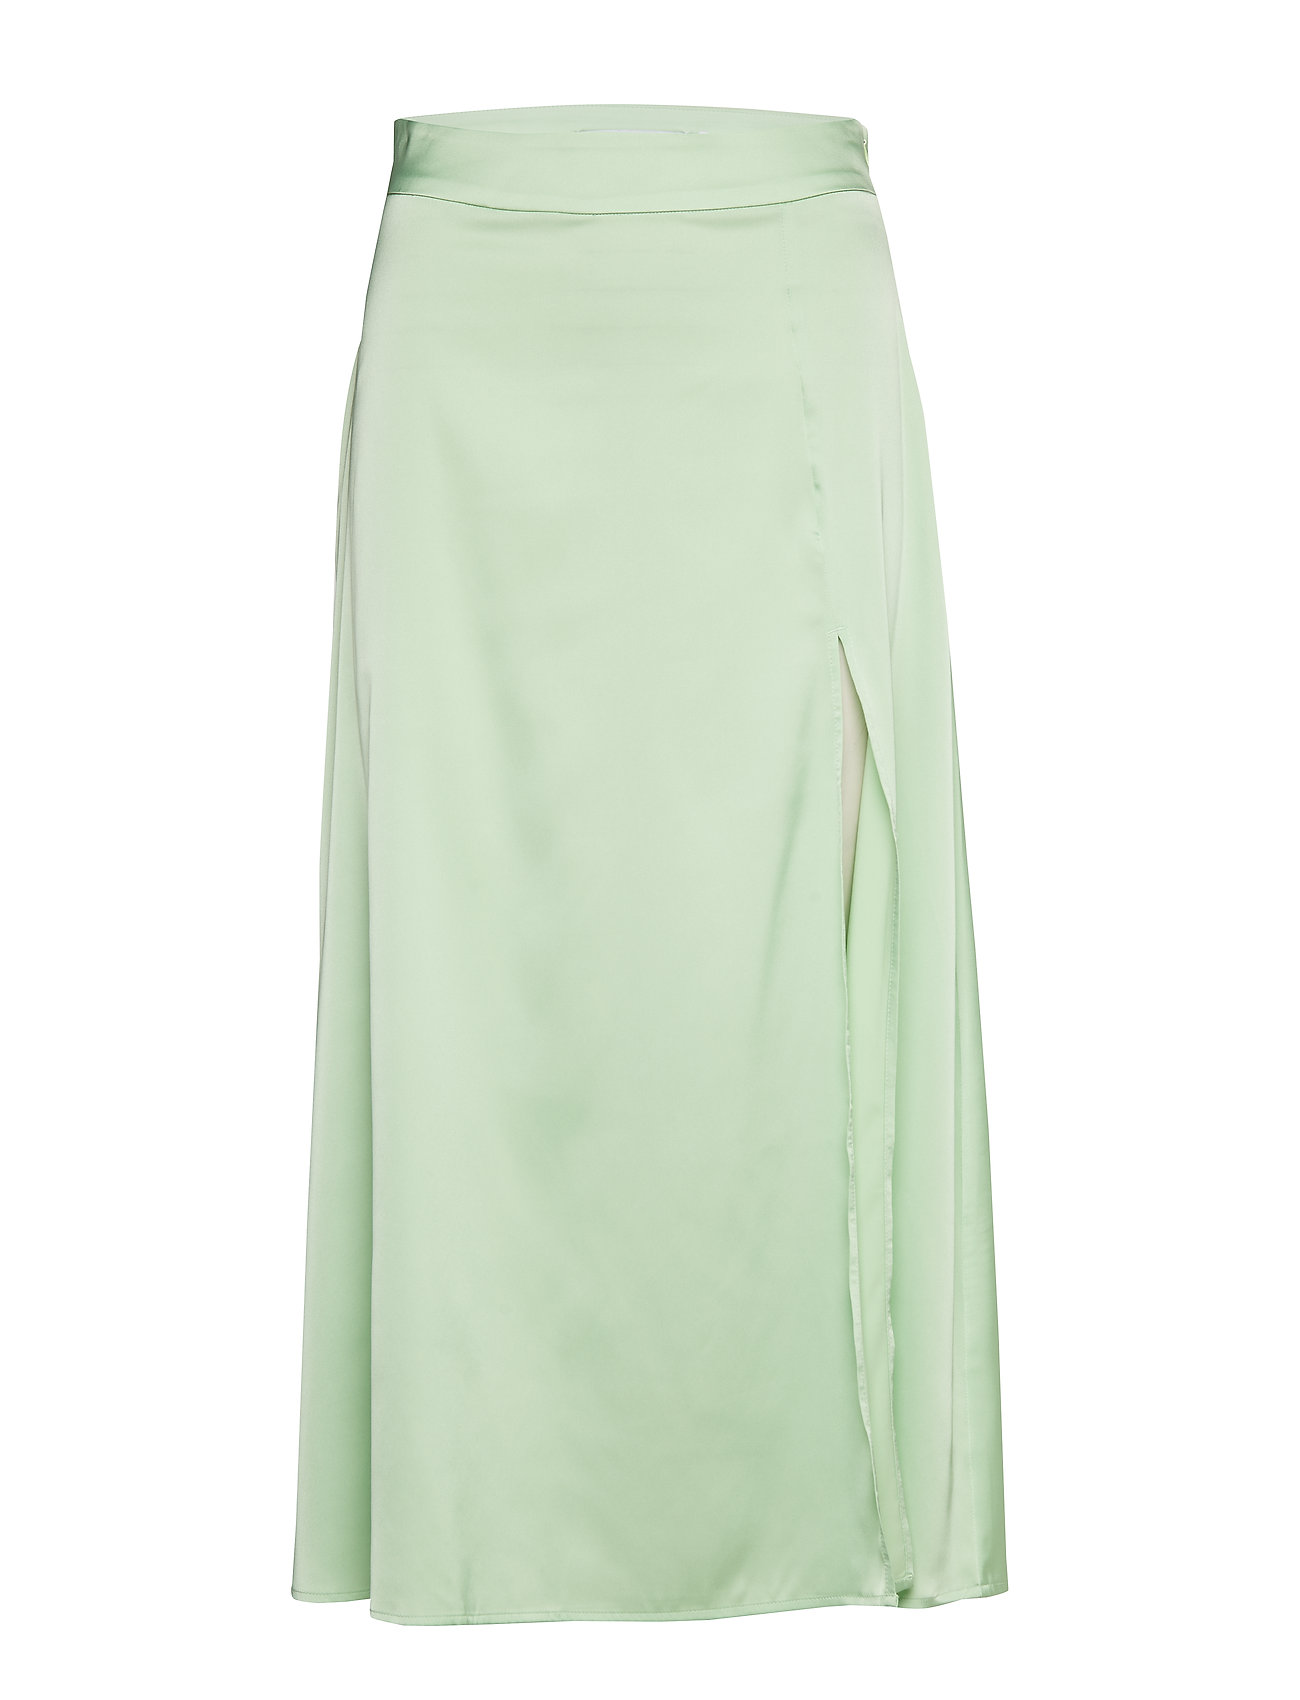 GreenIvyrevel Split GreenIvyrevel Split Skirtpastel Skirtpastel Split iZkXuPO